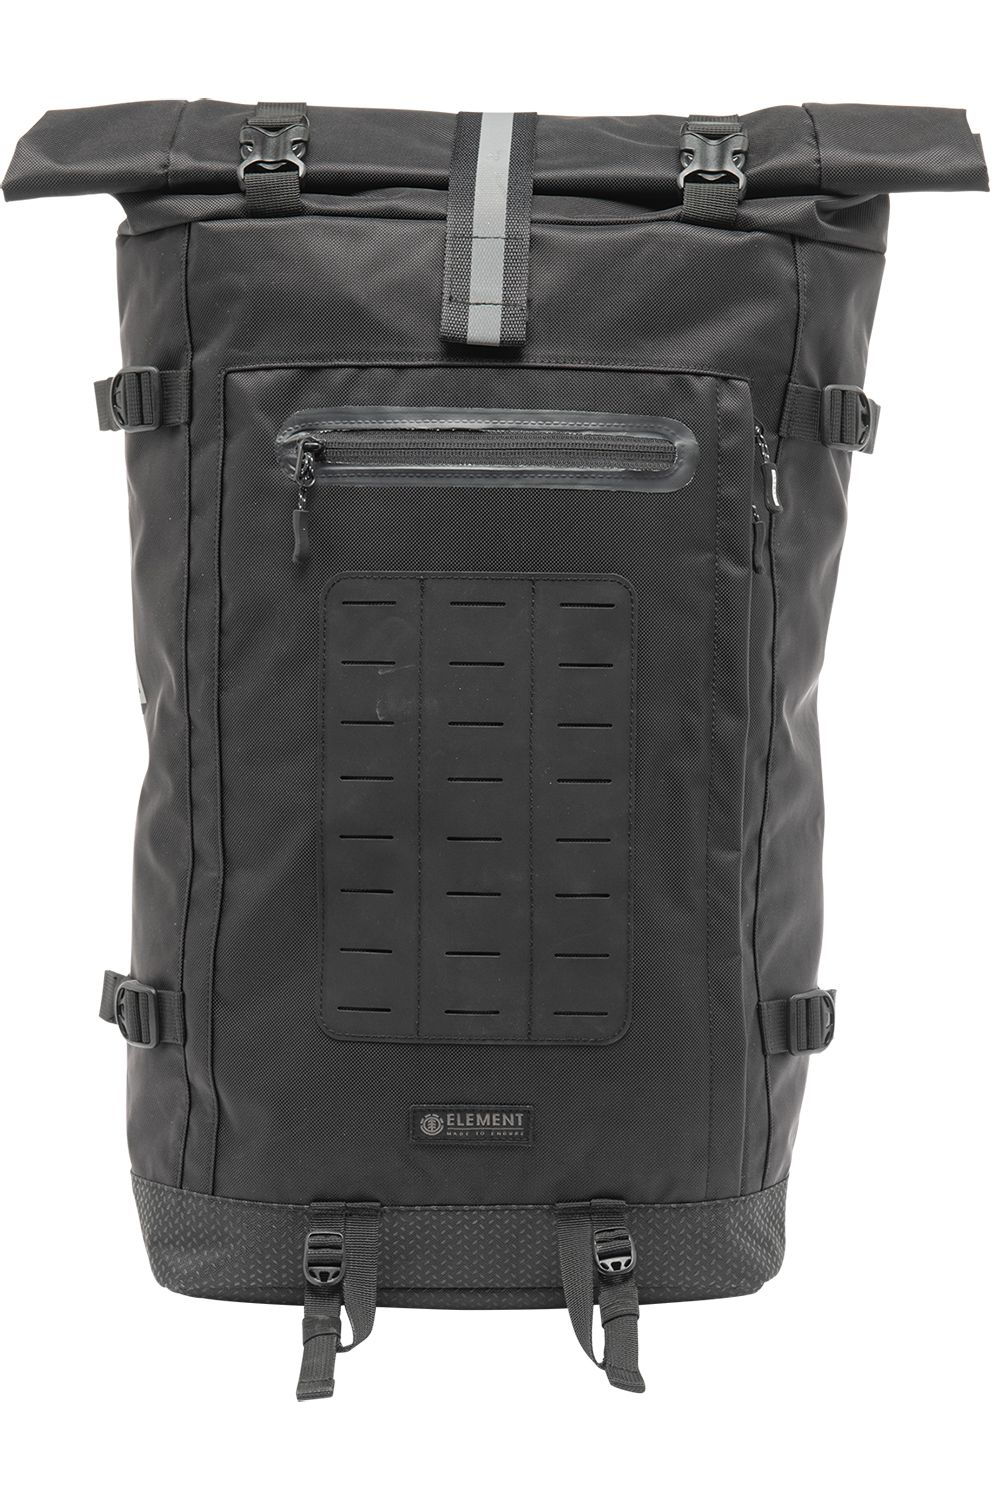 Element Backpack FUTURE NATURE ROLL-T NATIONAL GEOGRAPHIC Black